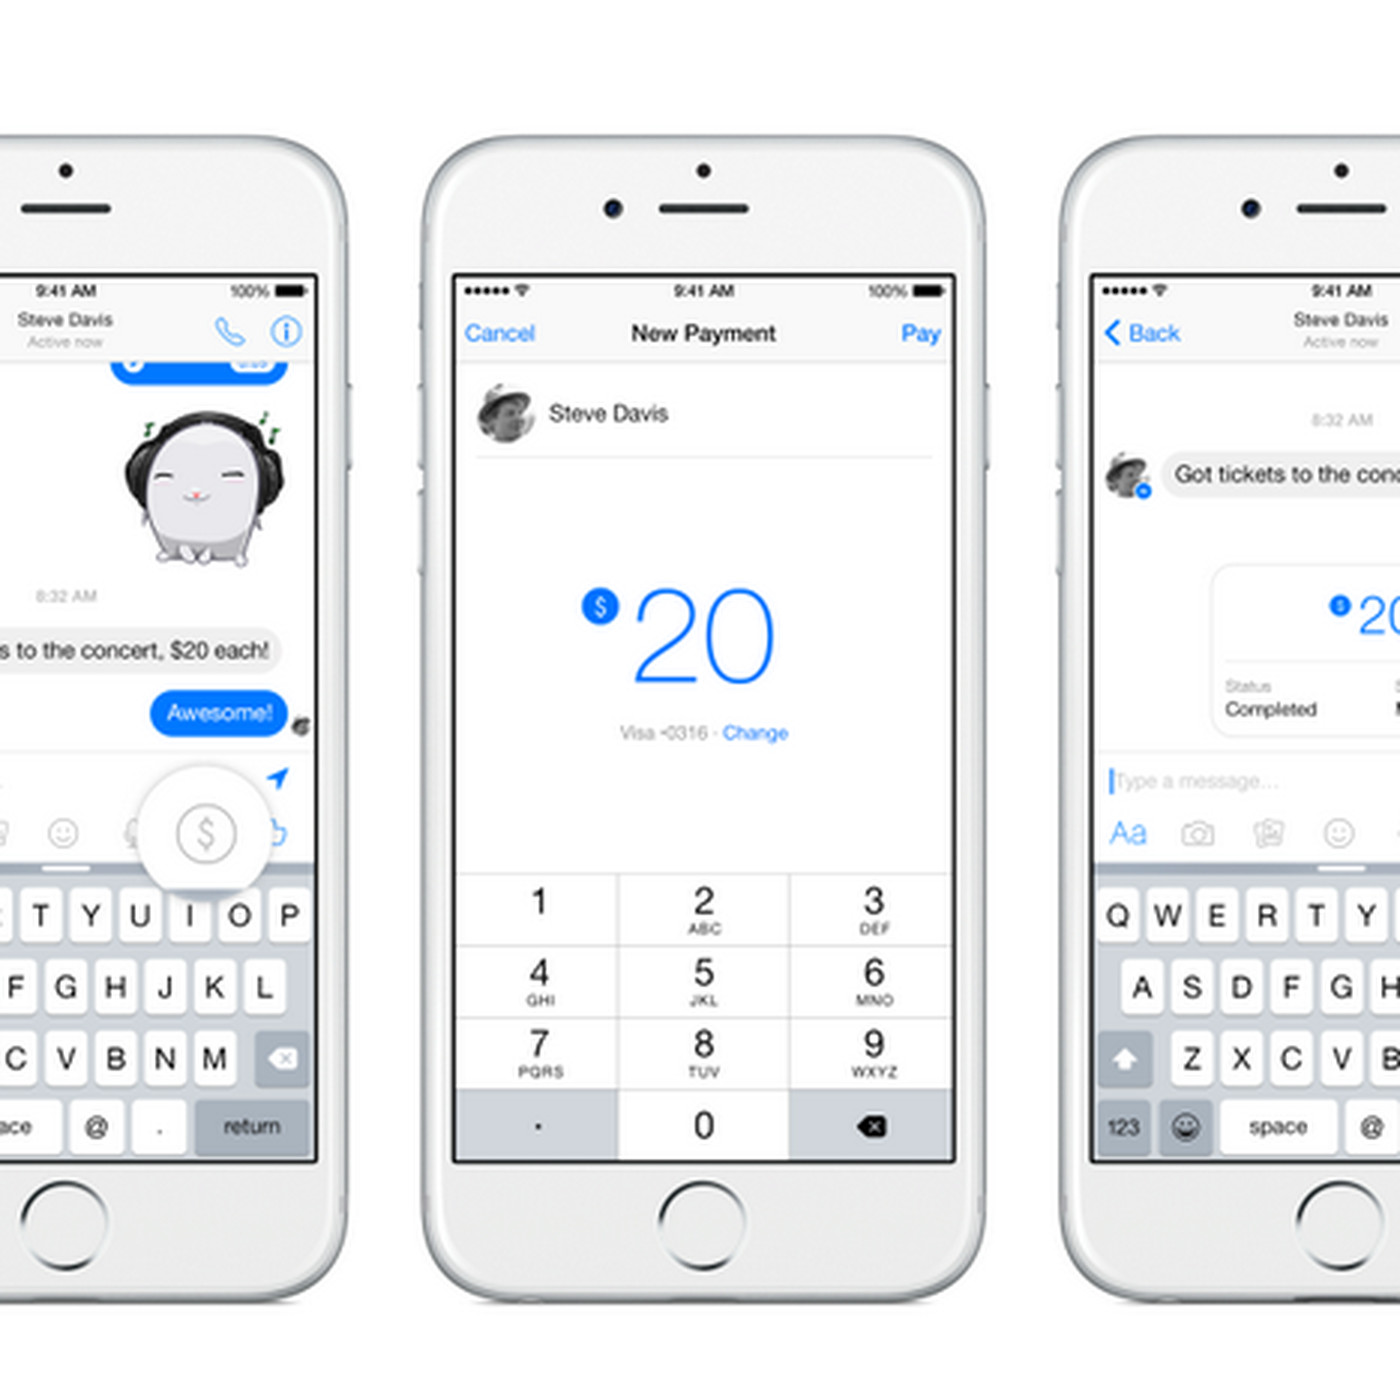 Facebook Messenger will now let you send money to friends - The Verge